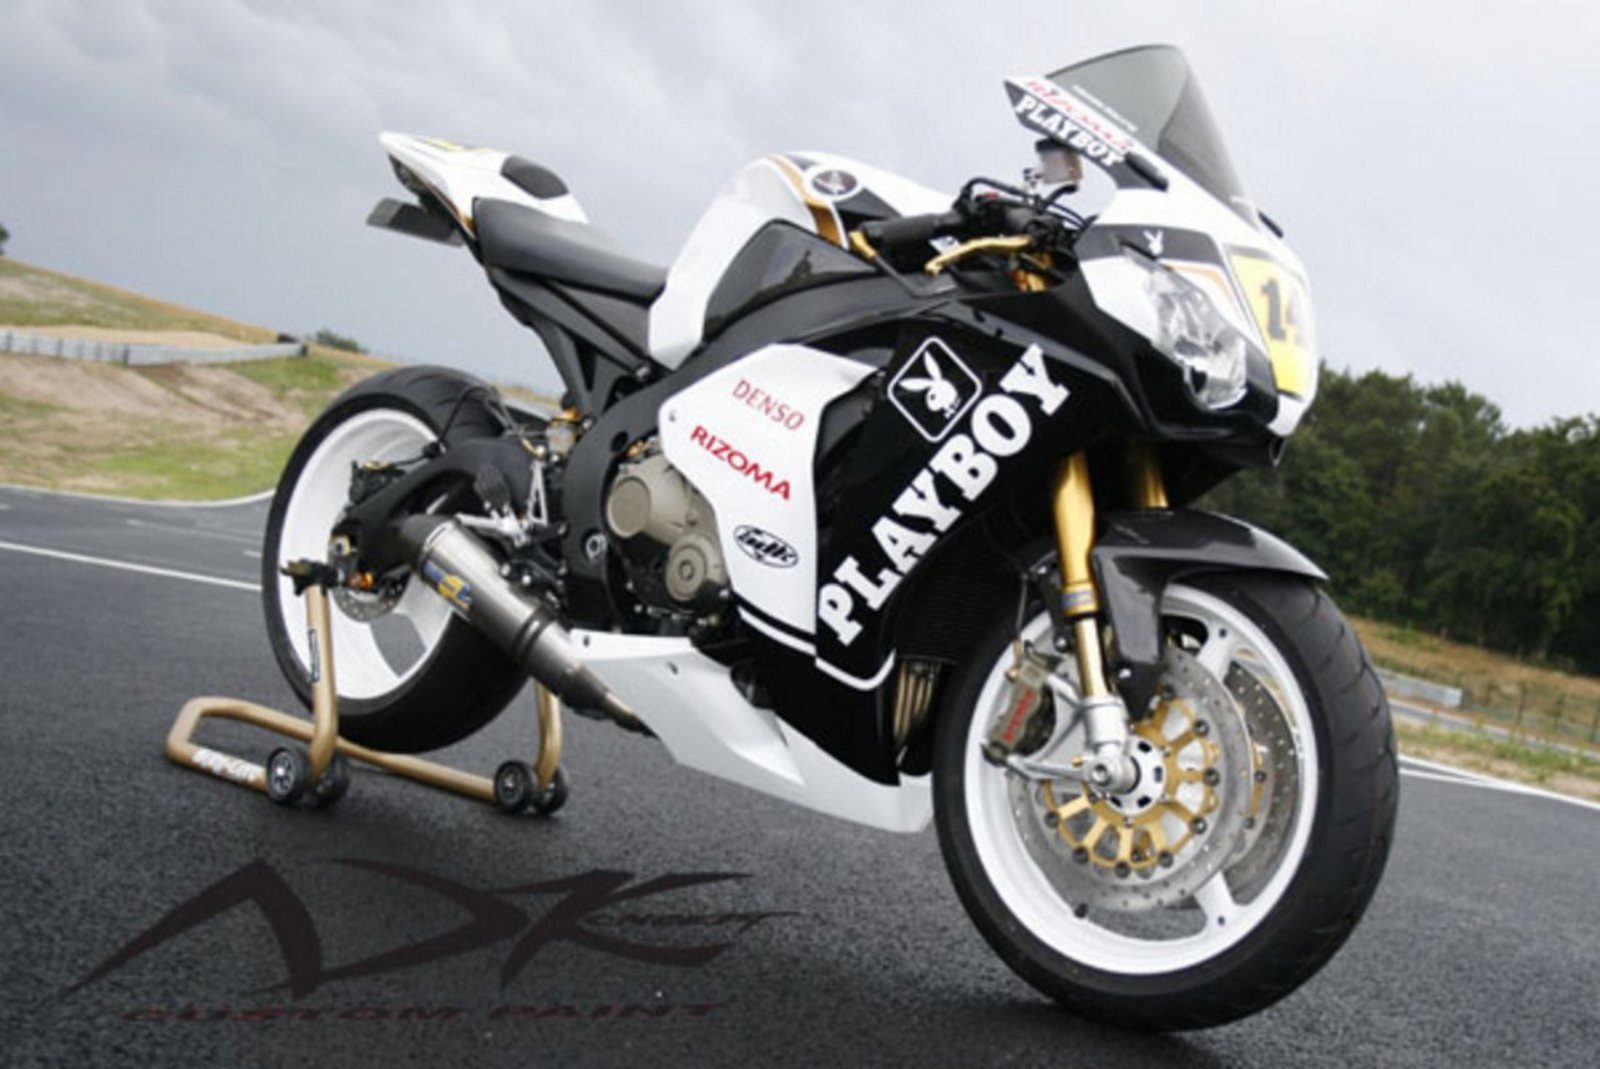 Honda Cbr Reviews Specs Prices Photos And Videos Top Speed Two Brothers Cbr1000rr 2012 2014 Silver Series Slip On Exhaust System With M 2 Carbon Fiber Canister